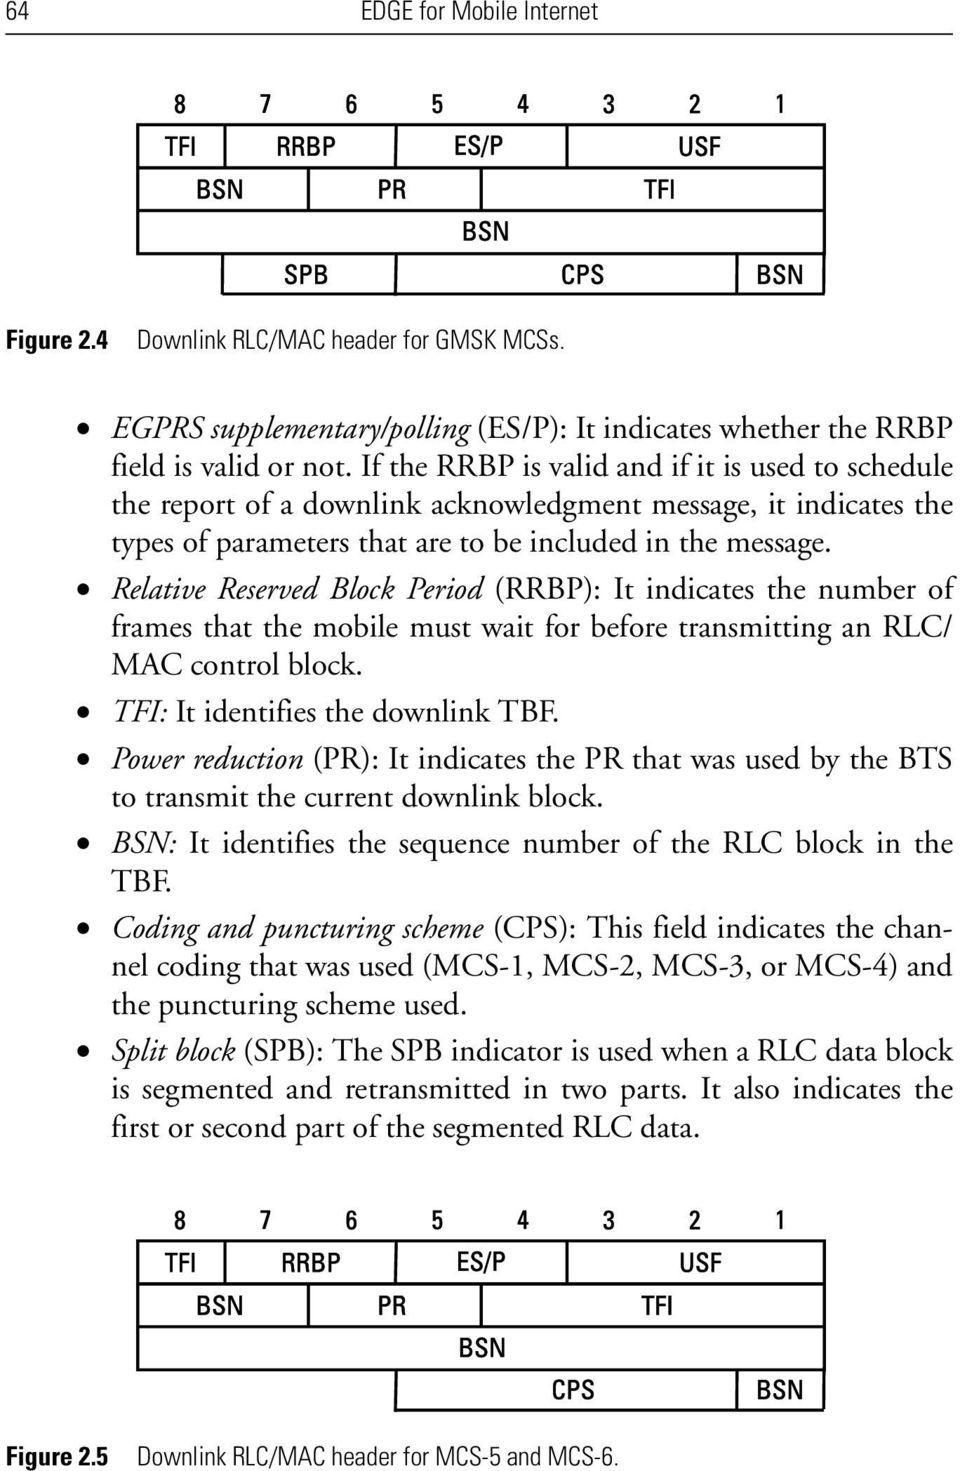 Relative Reserved Block Period (RRBP): It indicates the number of frames that the mobile must wait for before transmitting an RLC/ MAC control block. TFI: It identifies the downlink TBF.